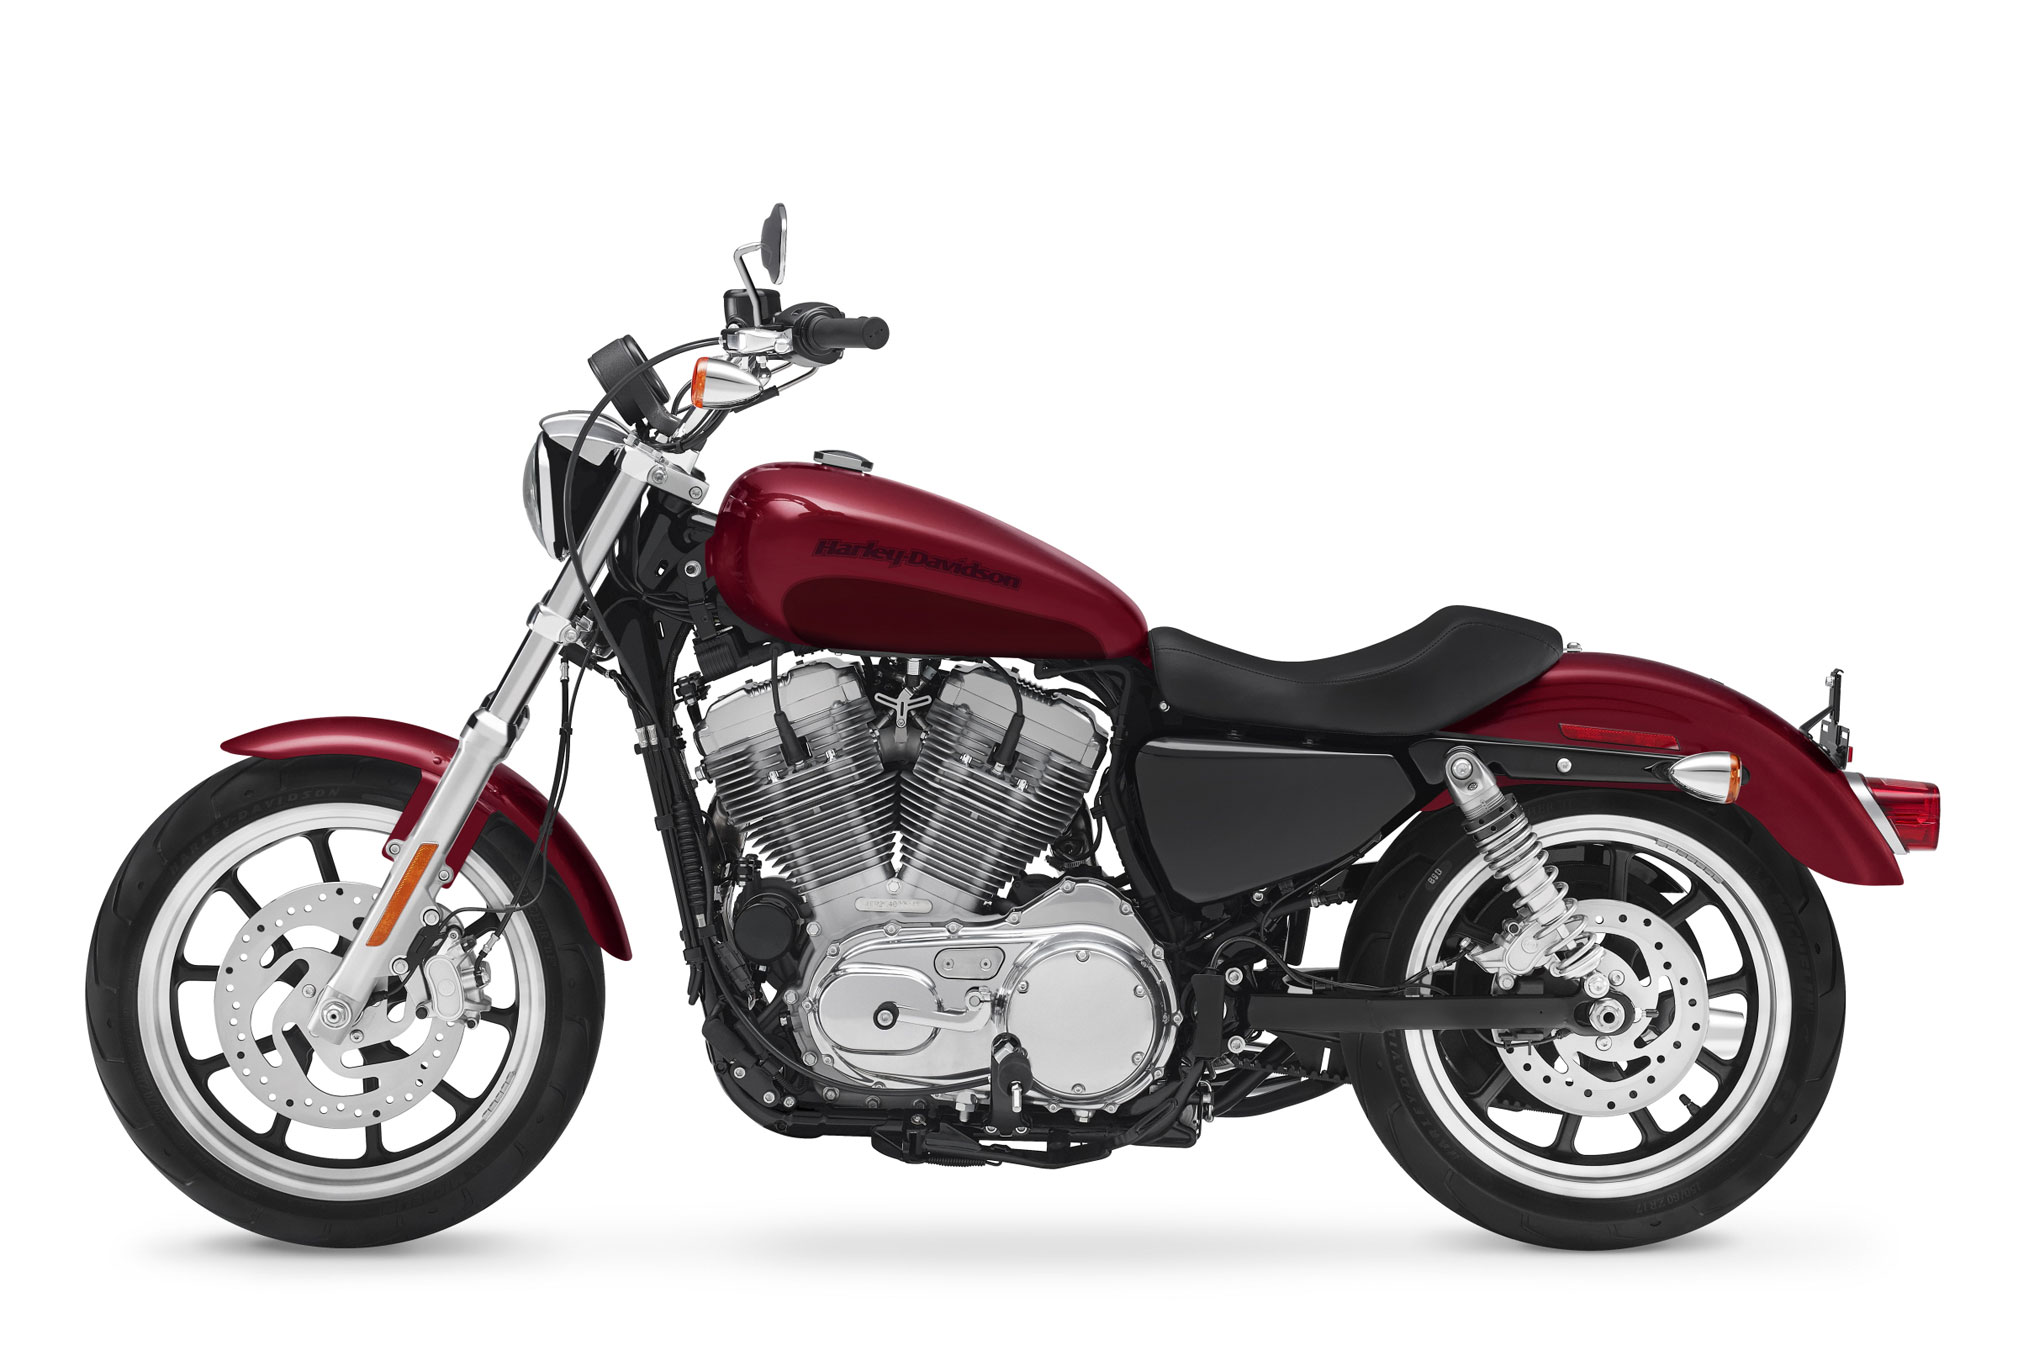 2018 Harley-Davidson SuperLow Review • Total Motorcycle